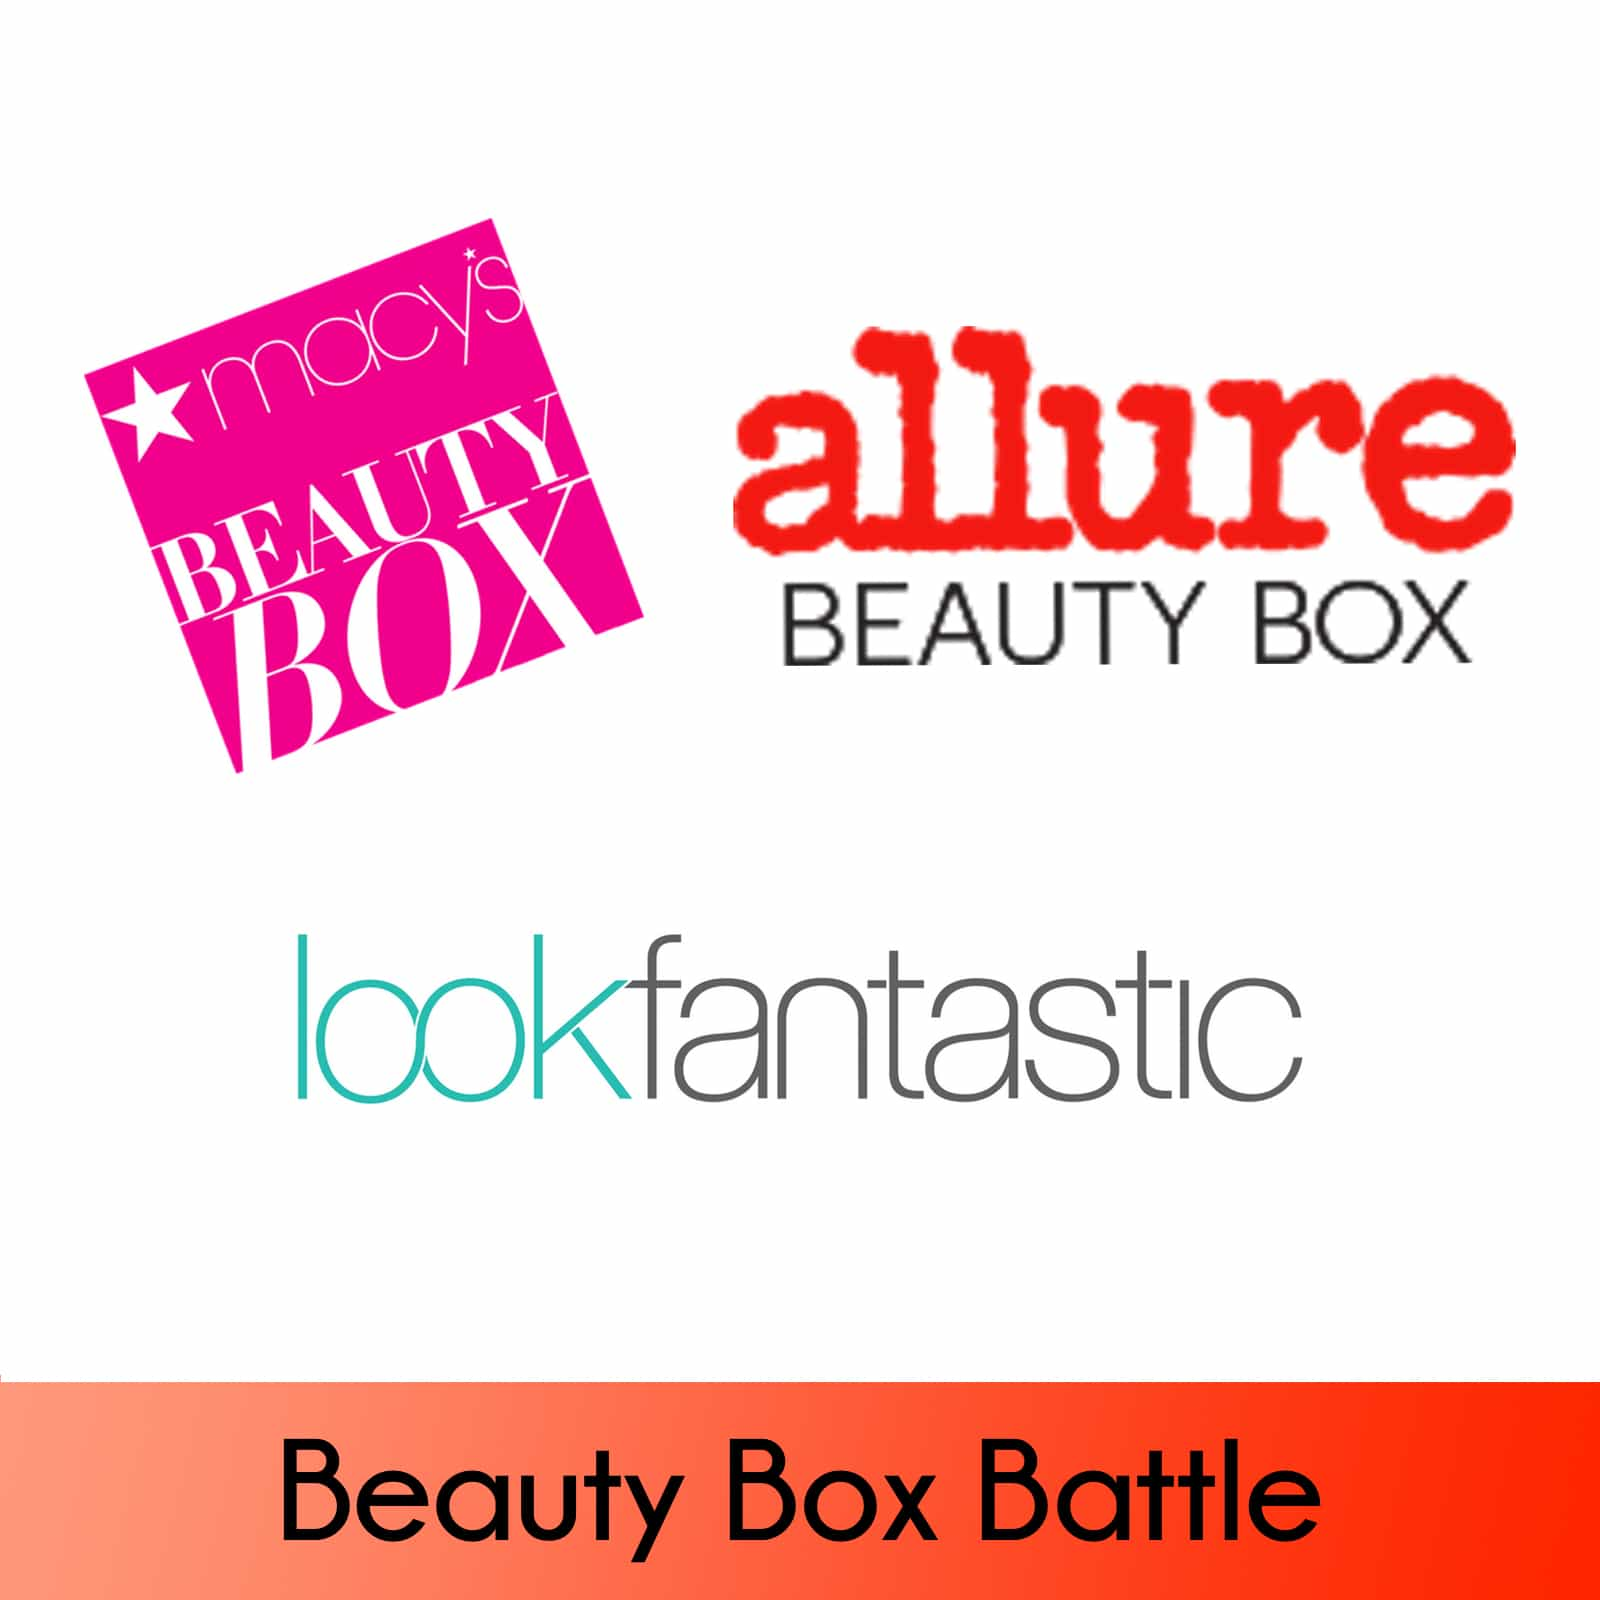 Macy's Beauty Box vs Allure Beauty Box vs Lookfantastic December 2017 Beauty Boxes!